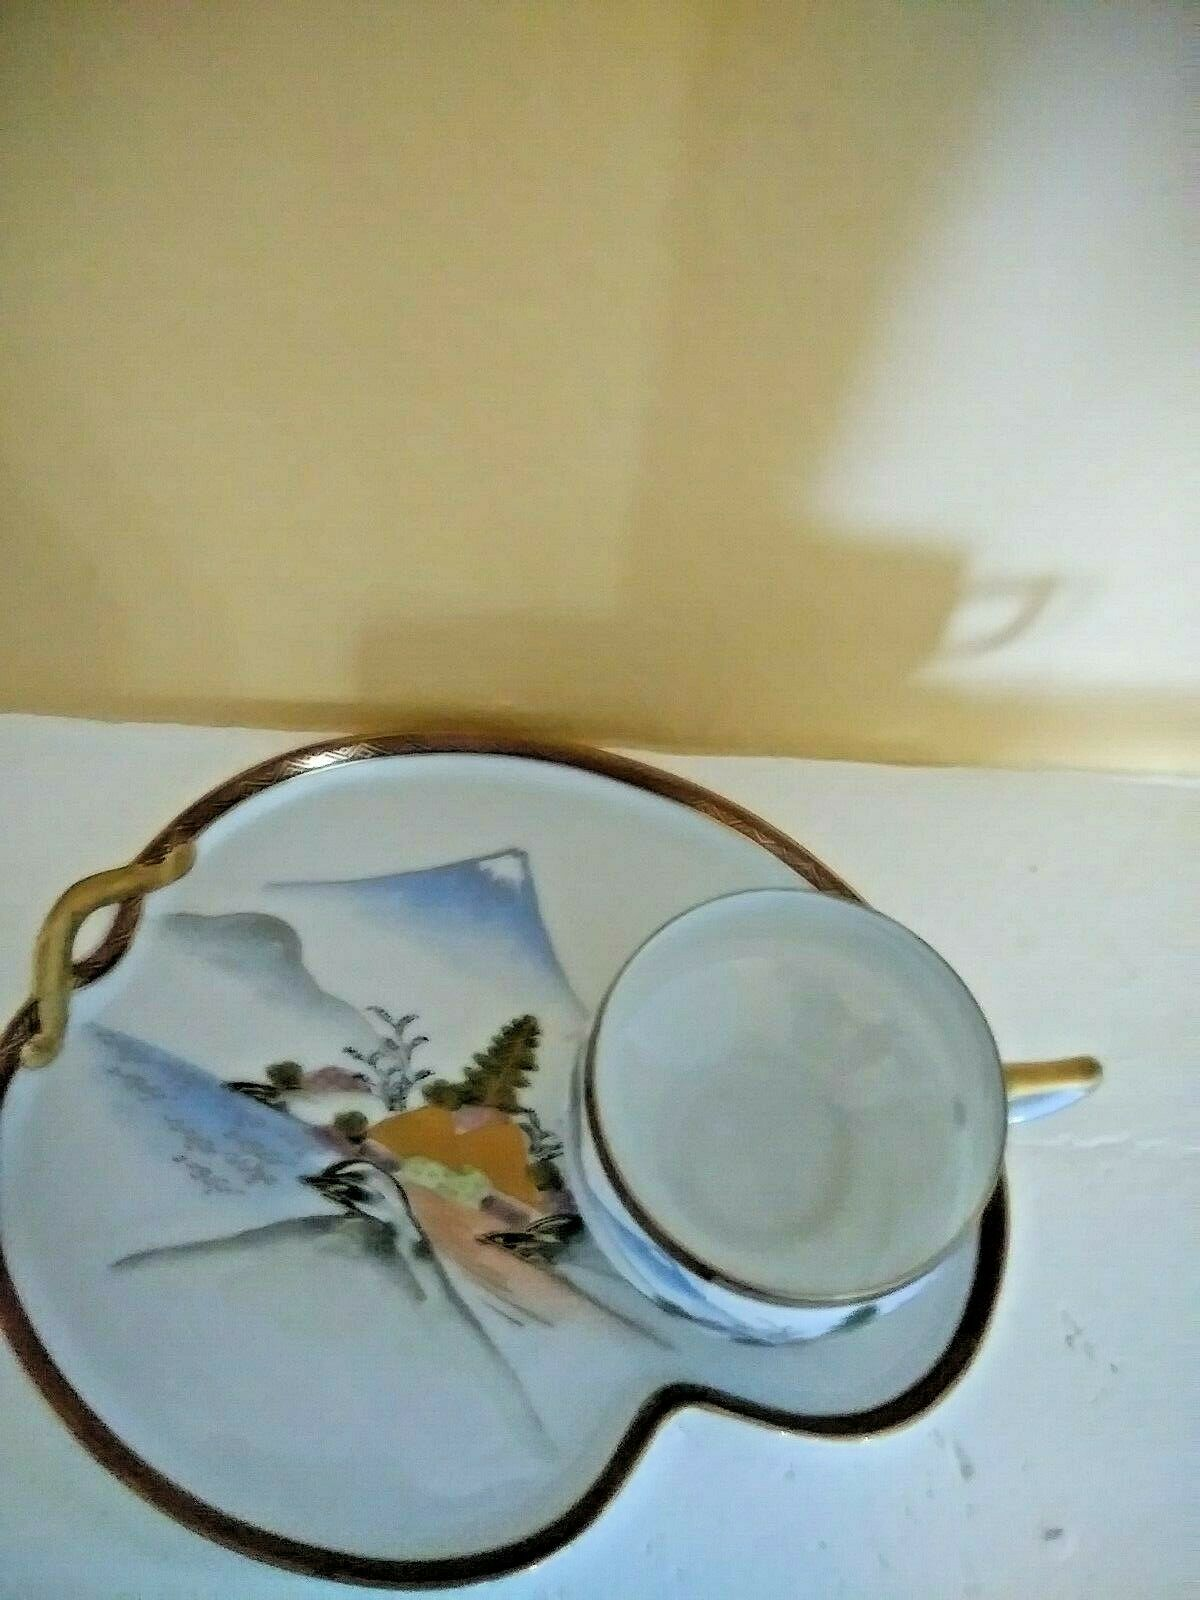 VTG Kutani Yaki Yamazaki Mt Fuji Japan 2pc TeaCup Snack Plate Porcelain China  - $24.99